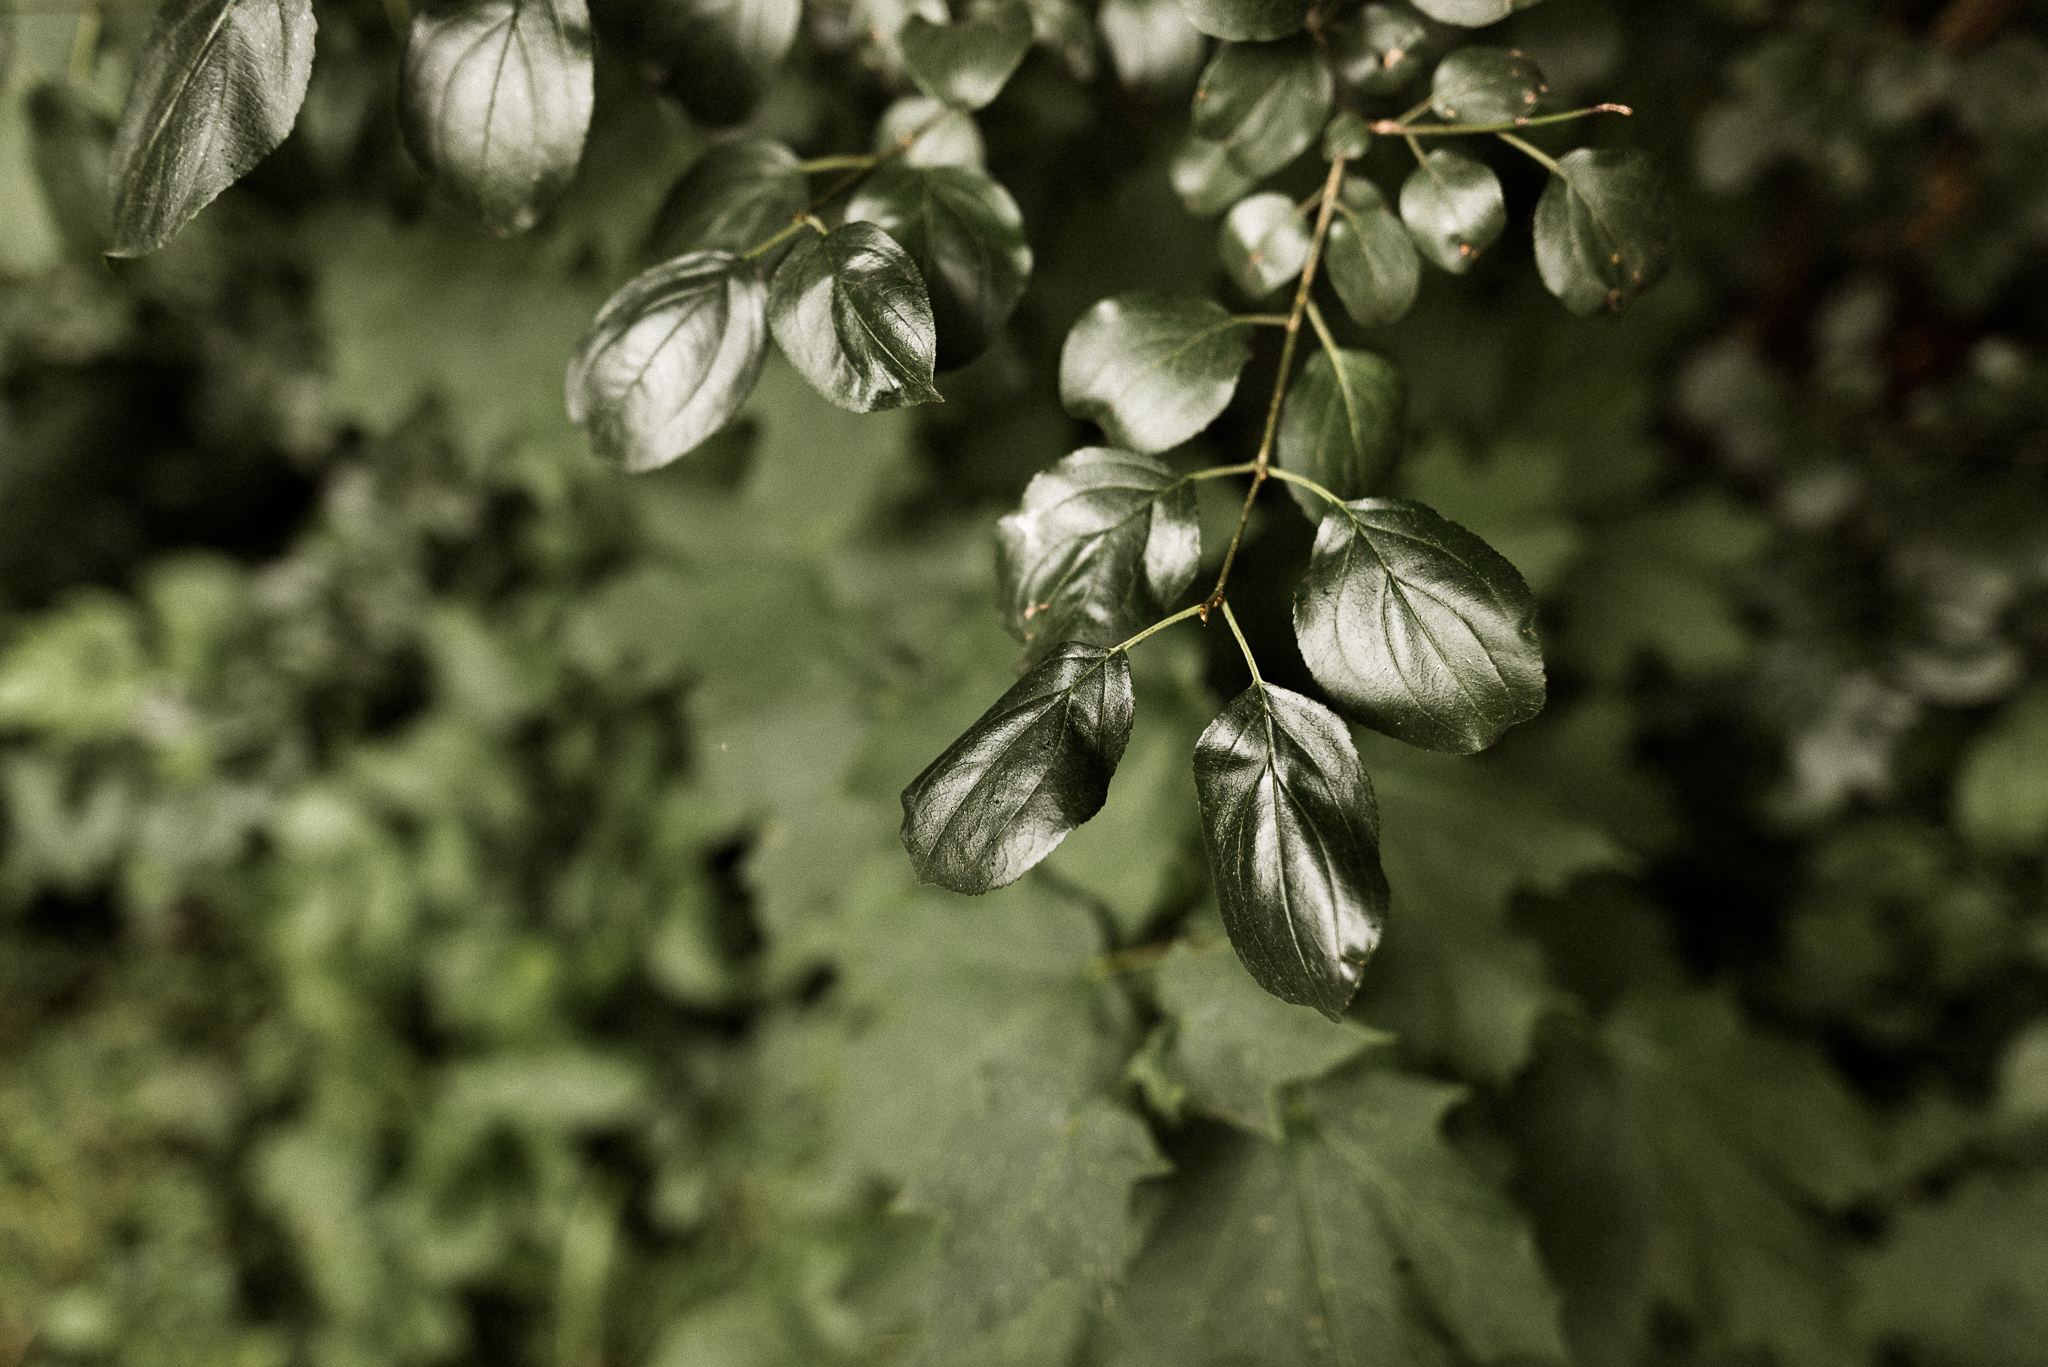 invASIVE PLANT REMOVAL - Do you have a Buckthorn infestation? Or other noxious weeds? Invasive plant species not only threatening our parks and natural areas, they may also be invading your yard!